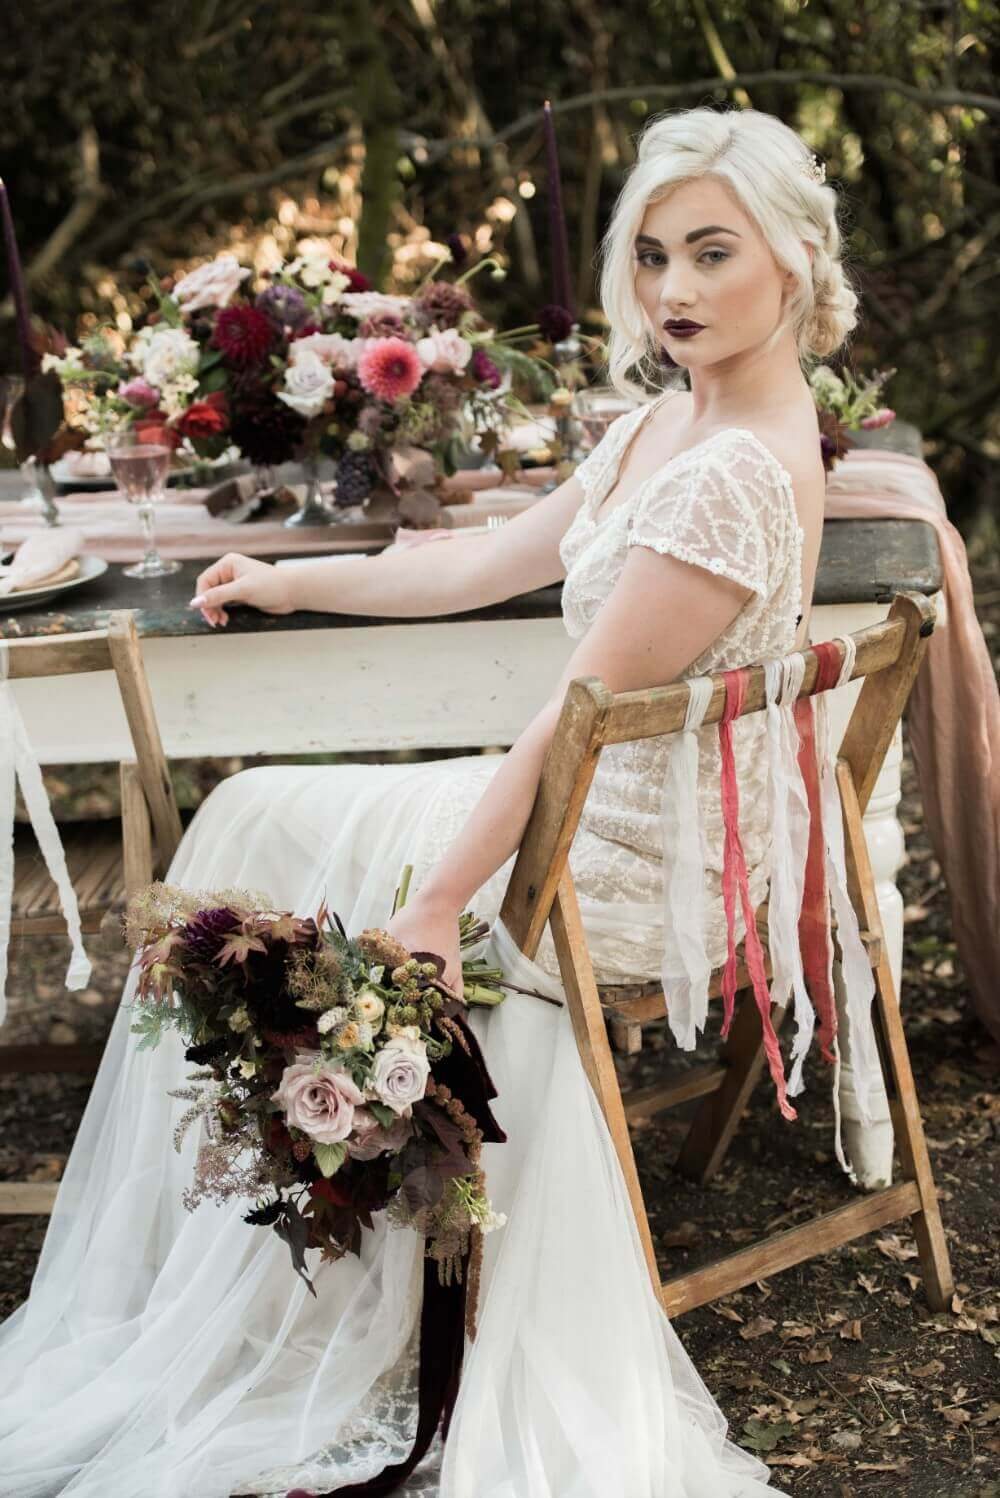 berry-inspired-wedding-styling.jpg